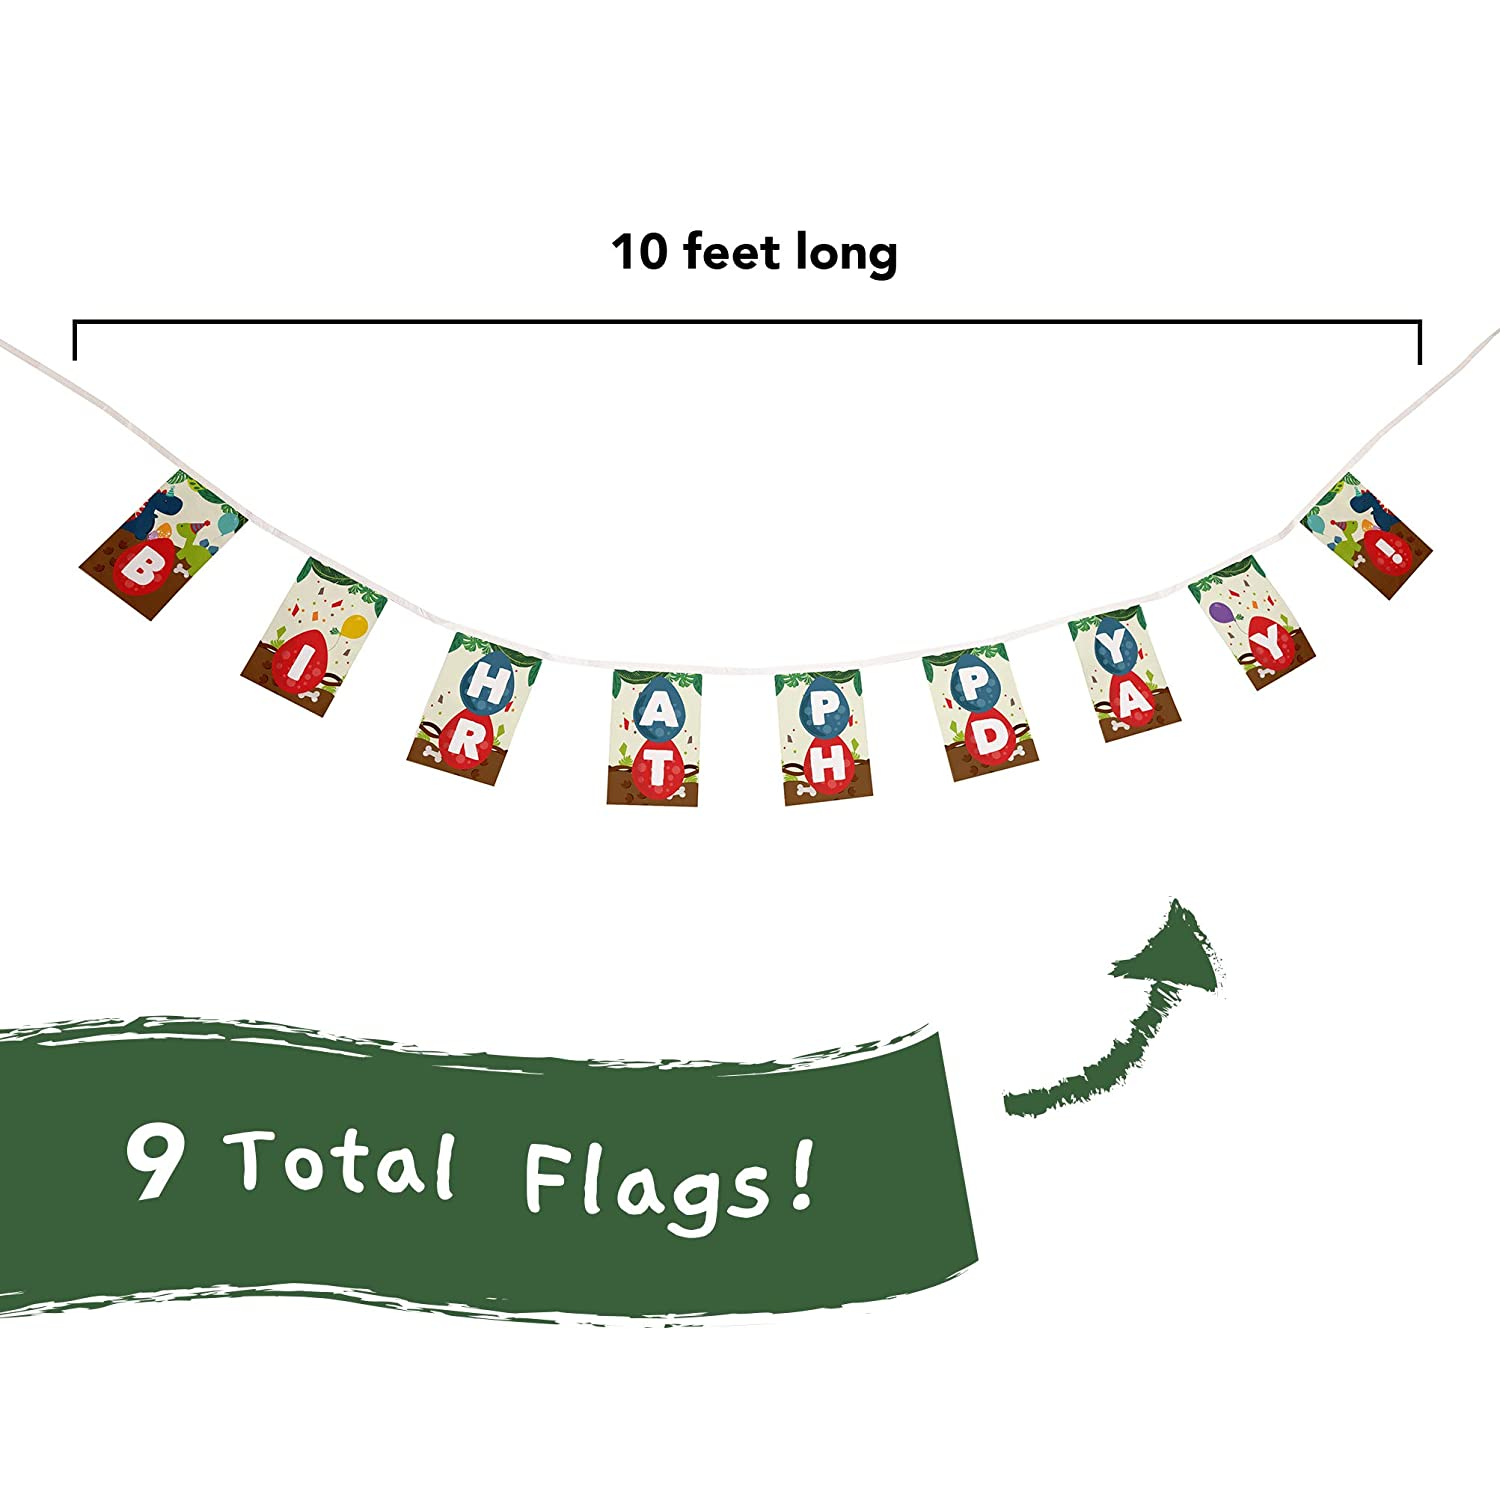 Dinosaur Themed Fiesta Flags Pennant Banner 10 Feet Long 9 Mini Flags Made of Polyester Cloth Birthday Party Decorations Bunting For Boys Girls